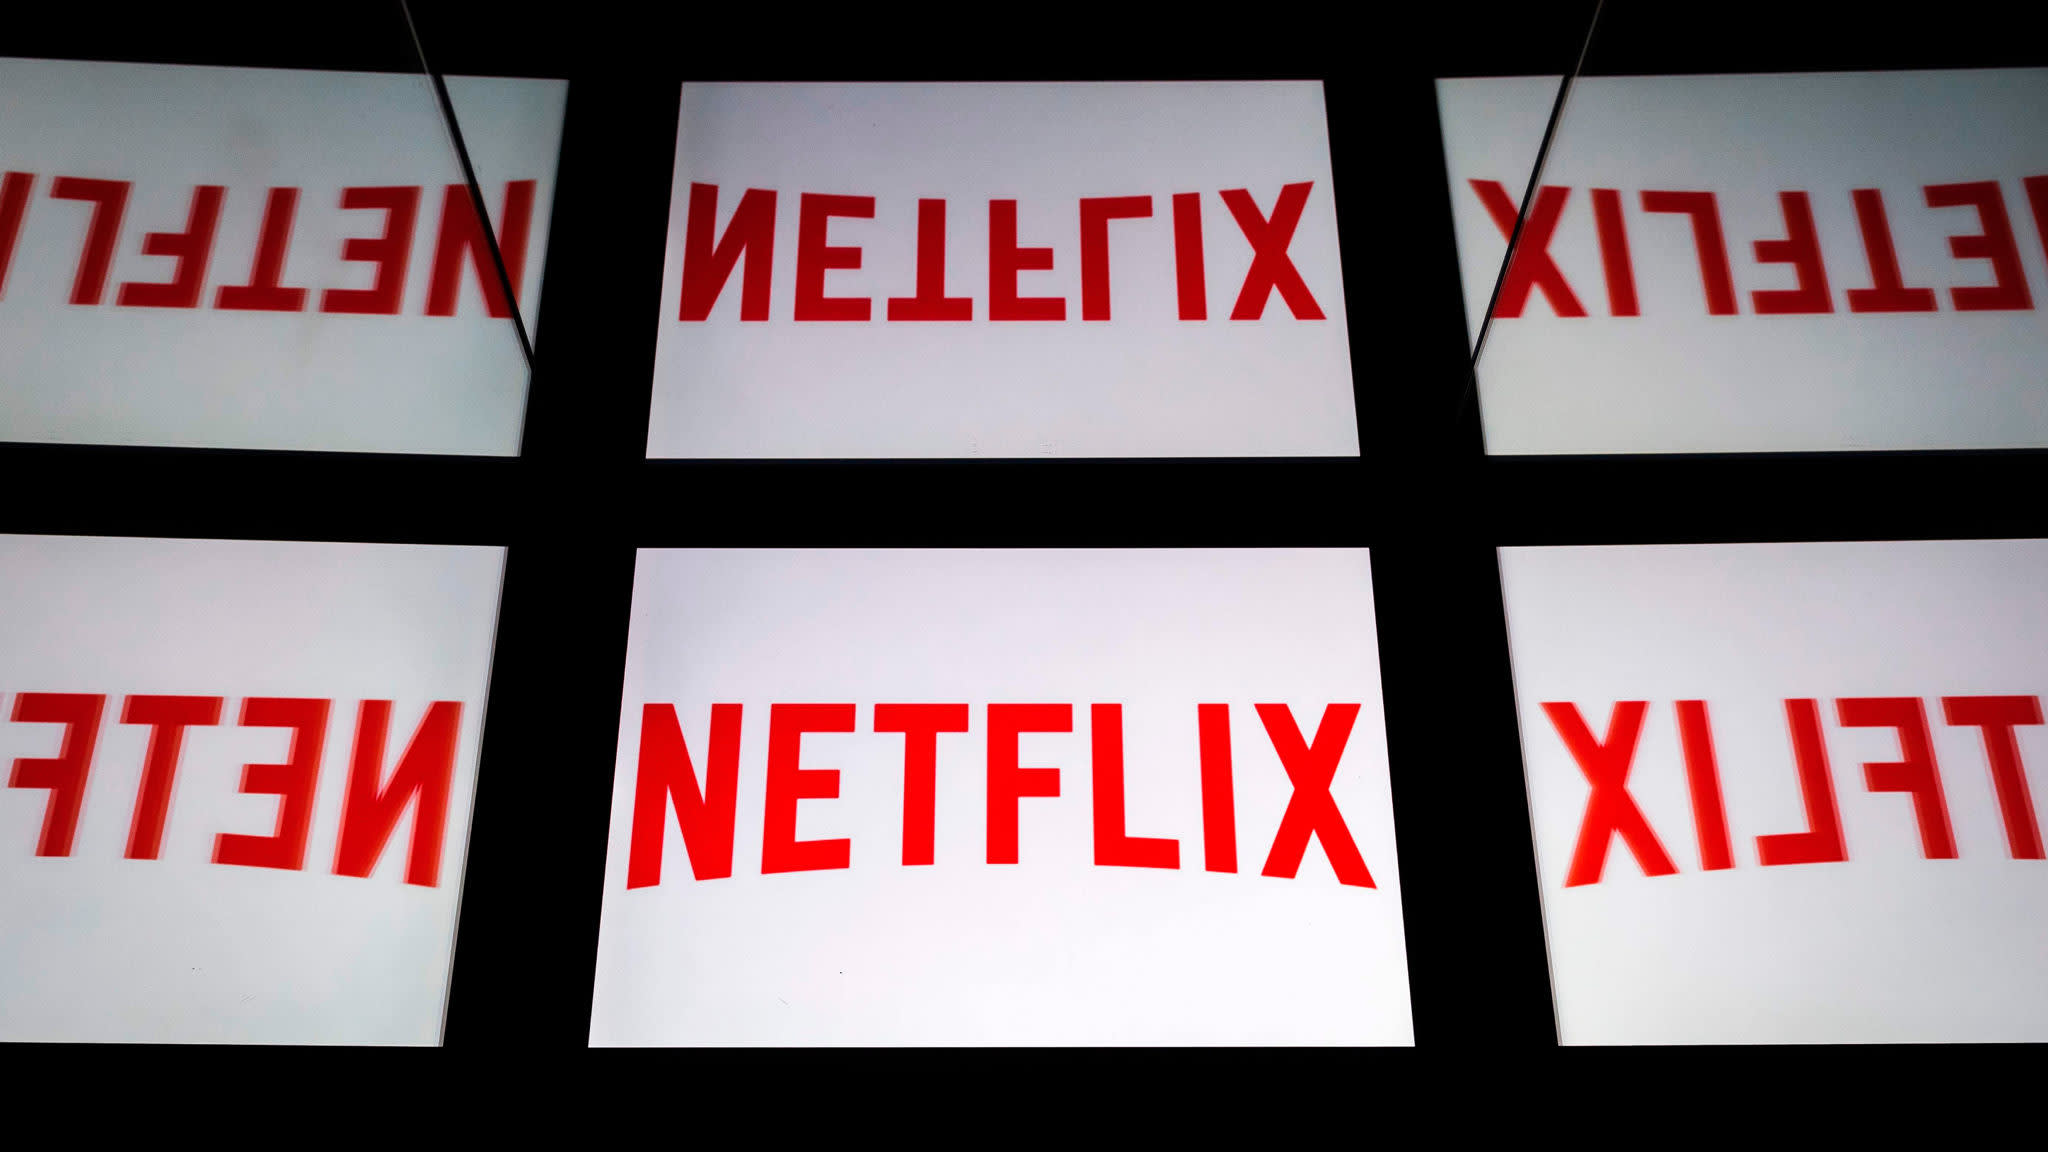 Netflix to sell $2bn in bonds as streaming competition heats